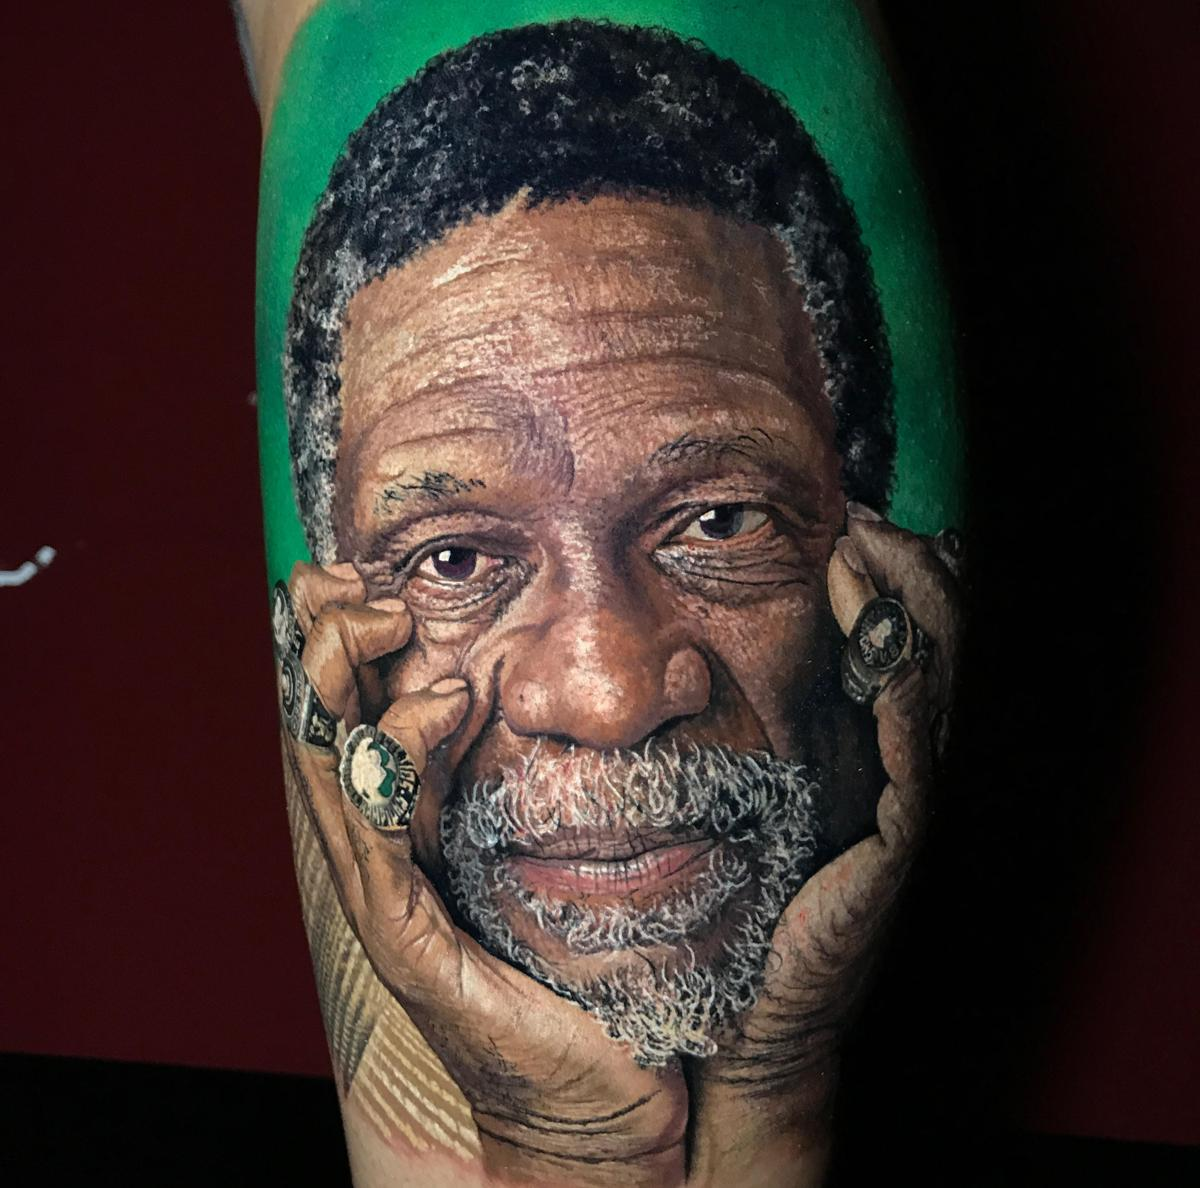 There s quite a story behind this Celtics fan s Bill Russell tattoo